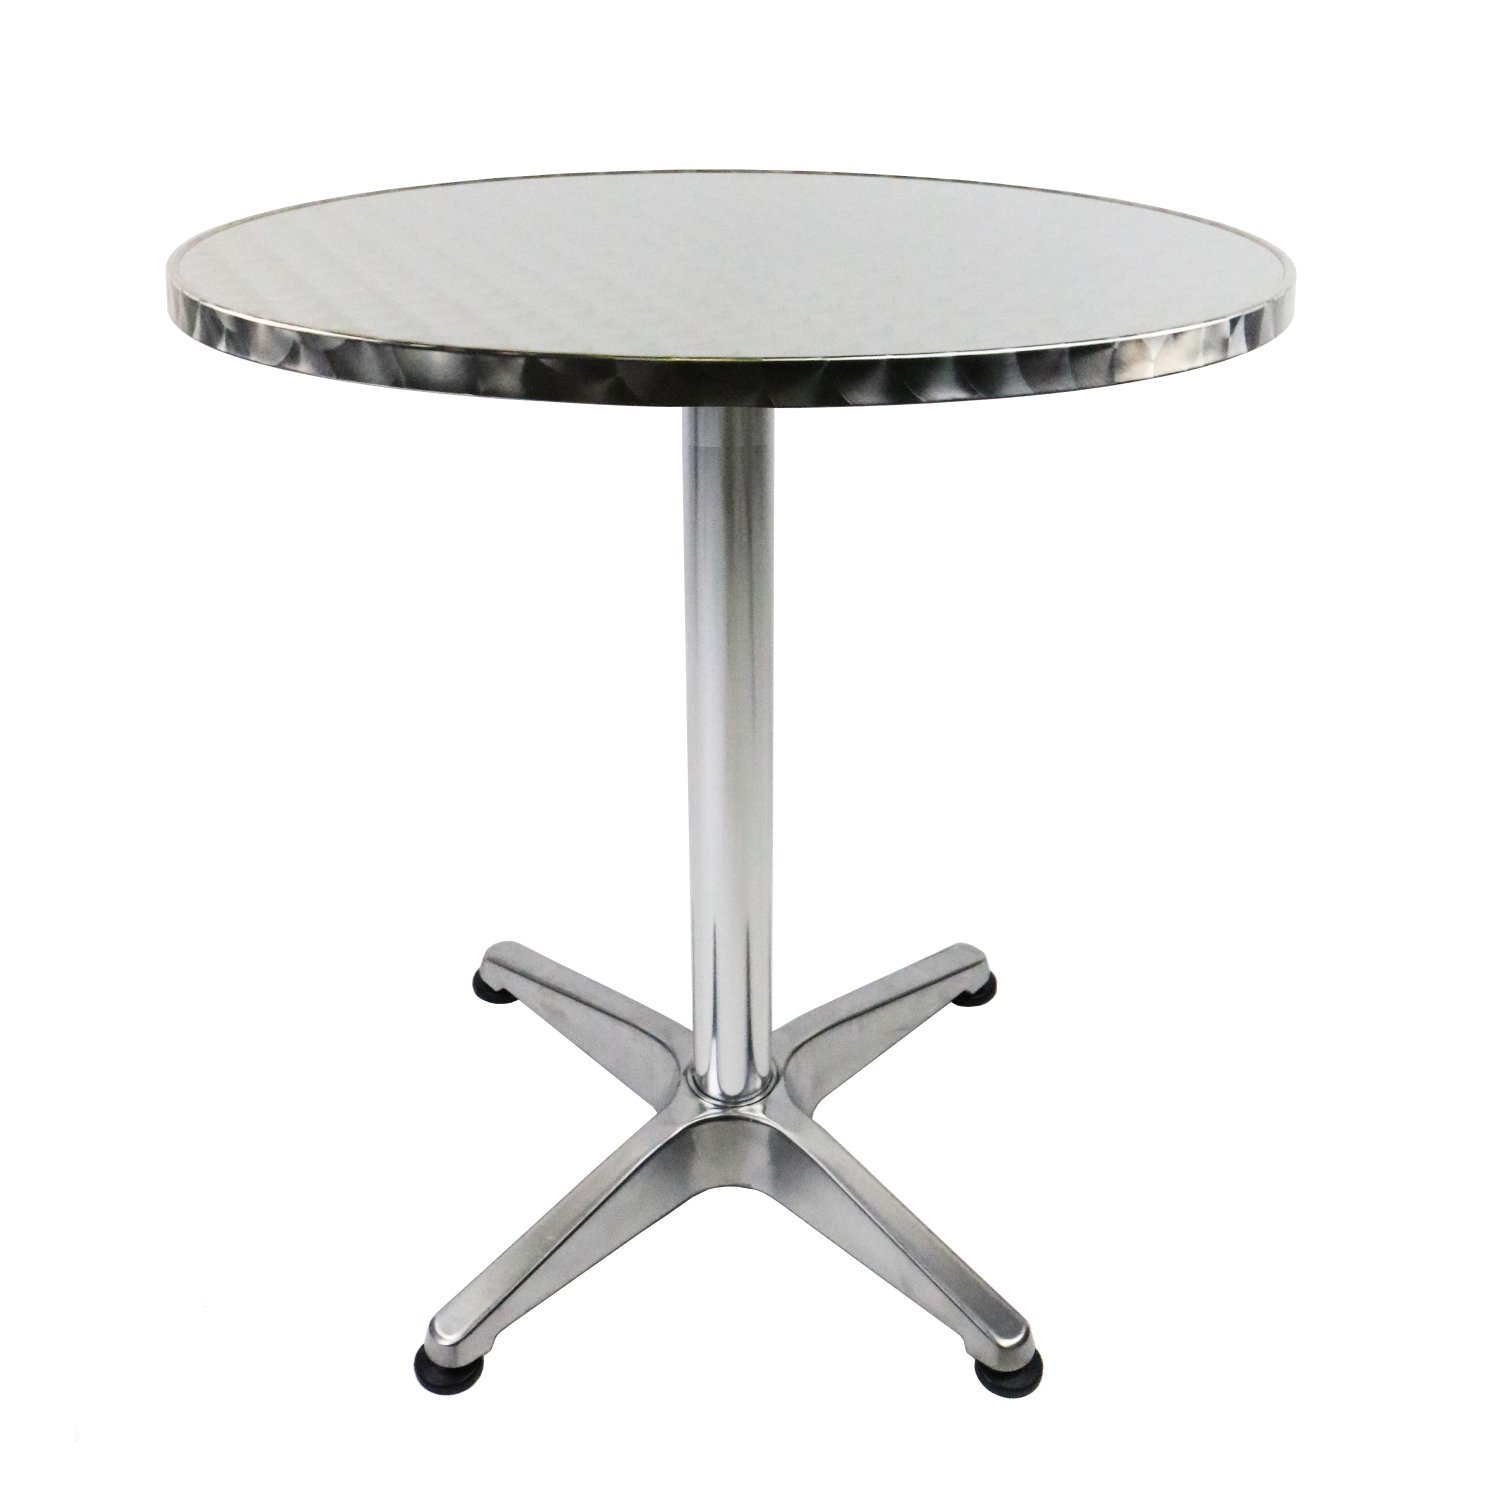 aluminium bistro table bar pub cafe party adjustable height oypla stocking the. Black Bedroom Furniture Sets. Home Design Ideas